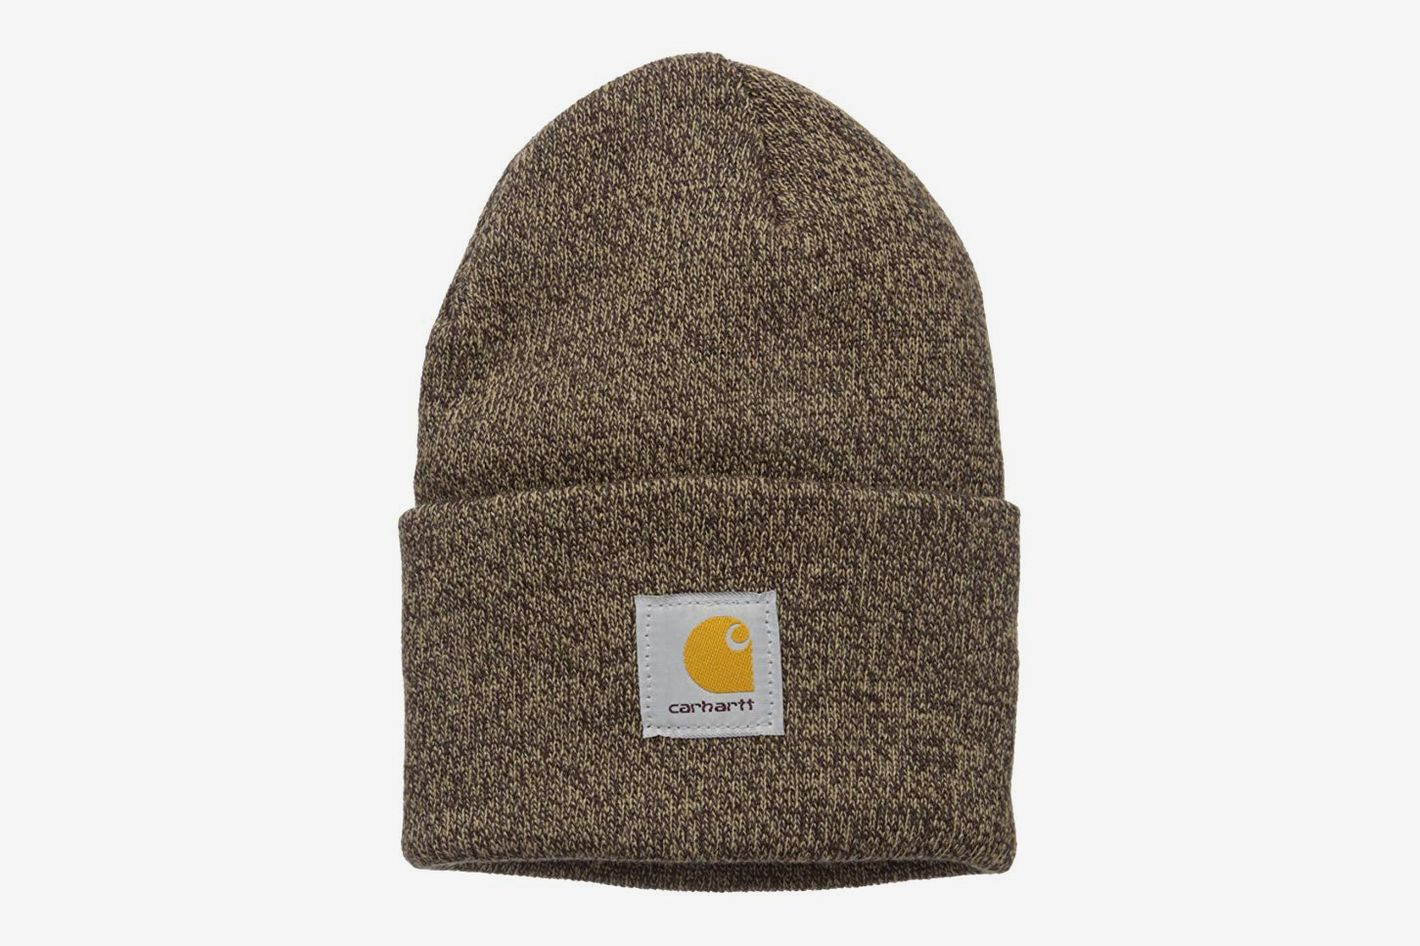 48a80fd5ba5 Carhartt Beanies Are Everywhere. Here s Why.